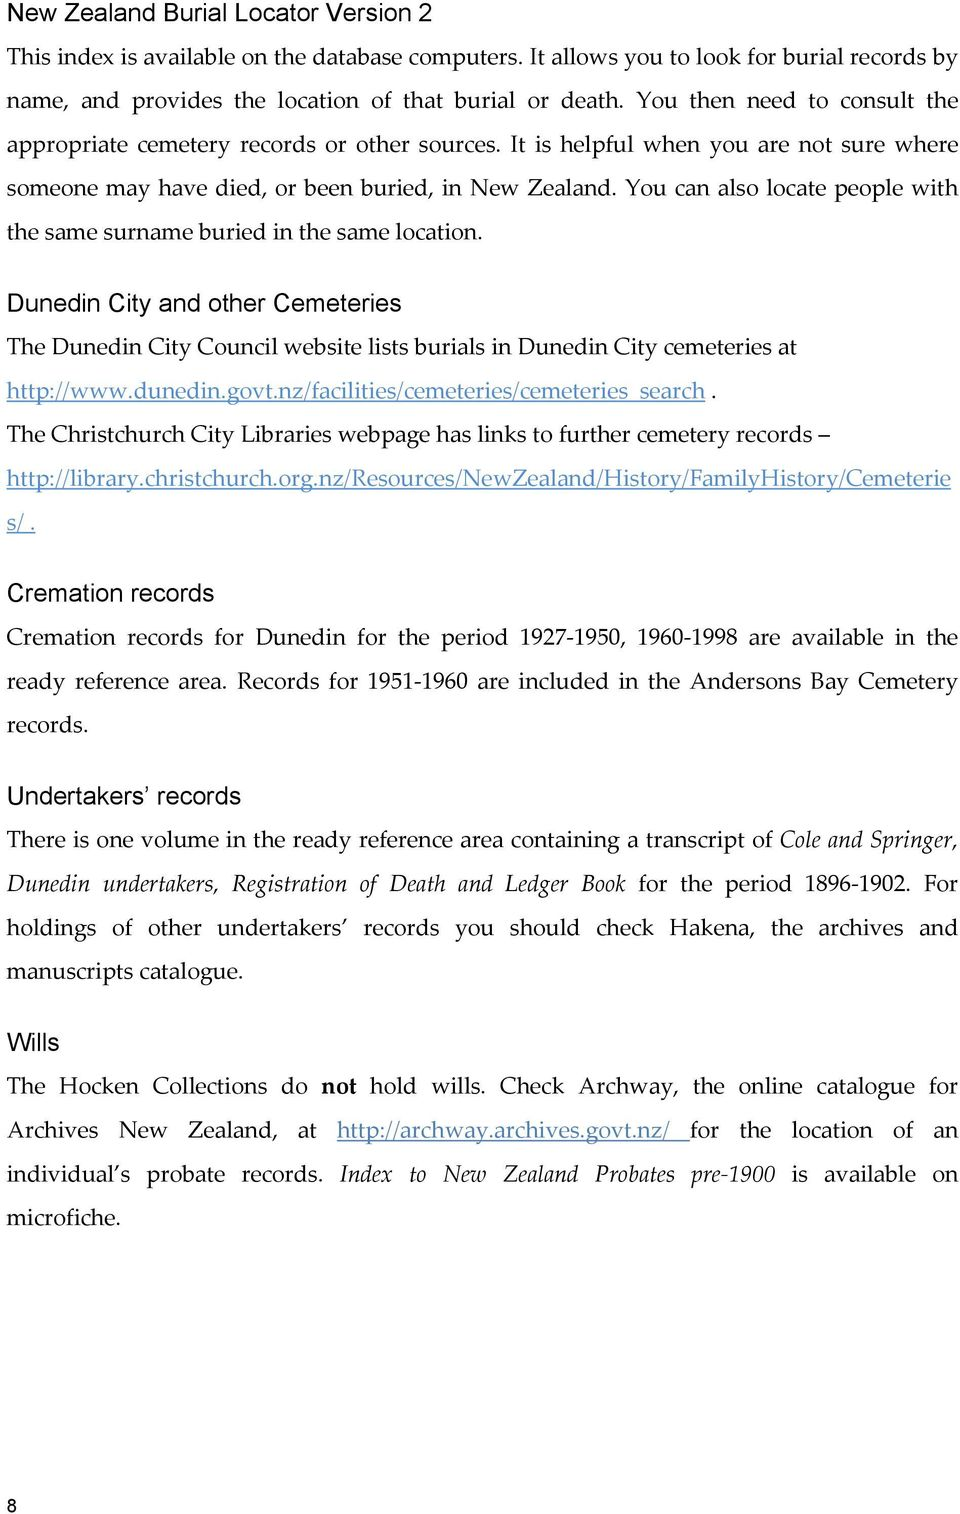 You can also locate people with the same surname buried in the same location. Dunedin City and other Cemeteries The Dunedin City Council website lists burials in Dunedin City cemeteries at http://www.